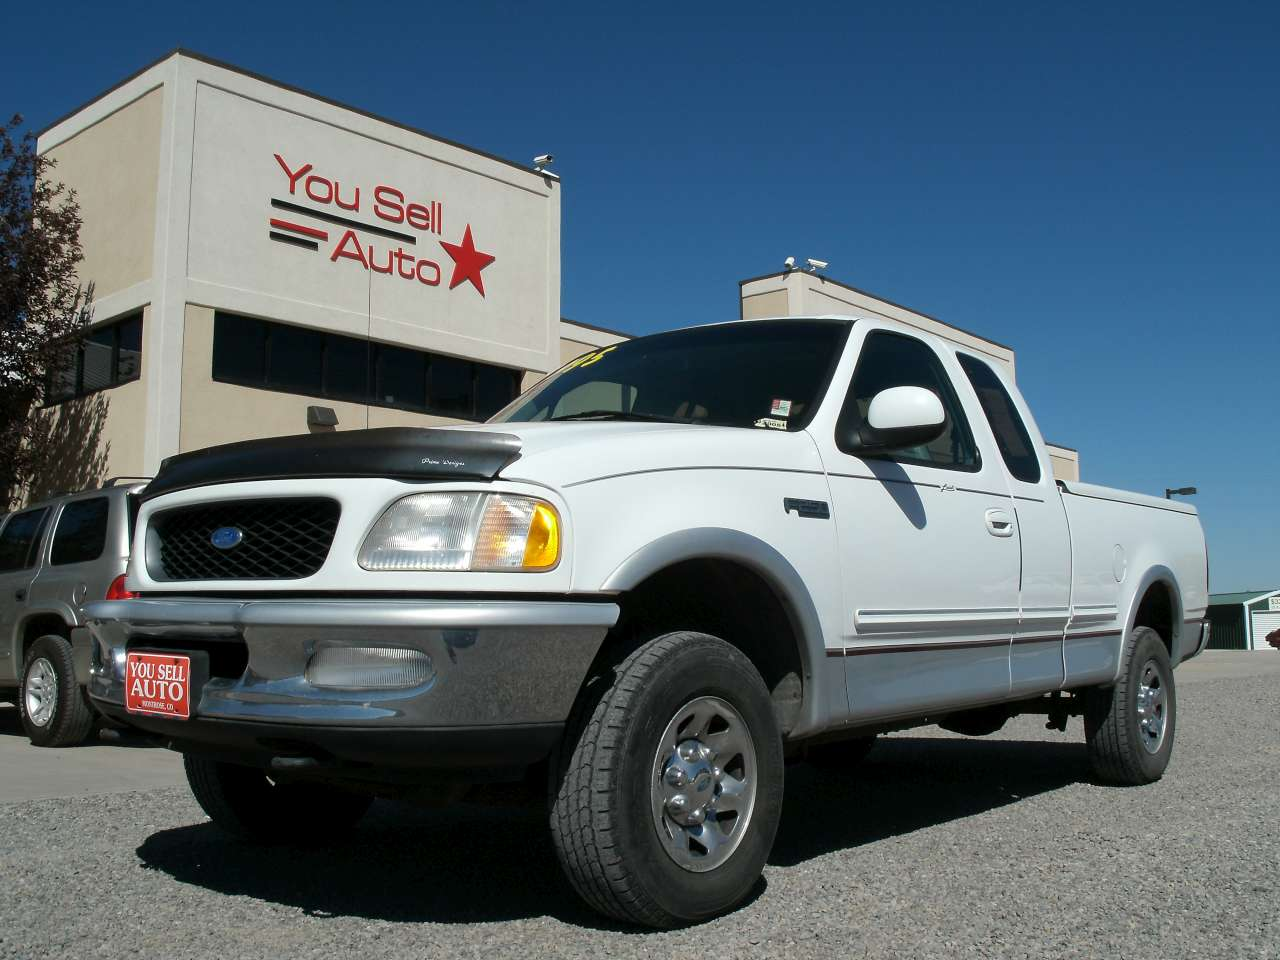 1997 ford f250 lariat 4x4 sold you sell auto. Black Bedroom Furniture Sets. Home Design Ideas